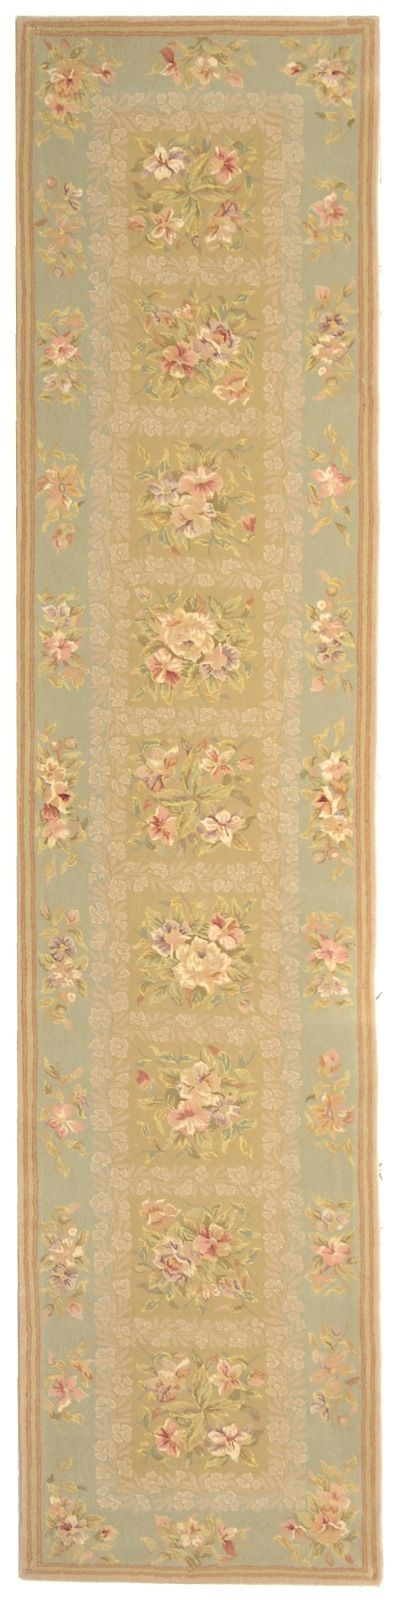 safavieh french tapis country floral area rug collection. Black Bedroom Furniture Sets. Home Design Ideas